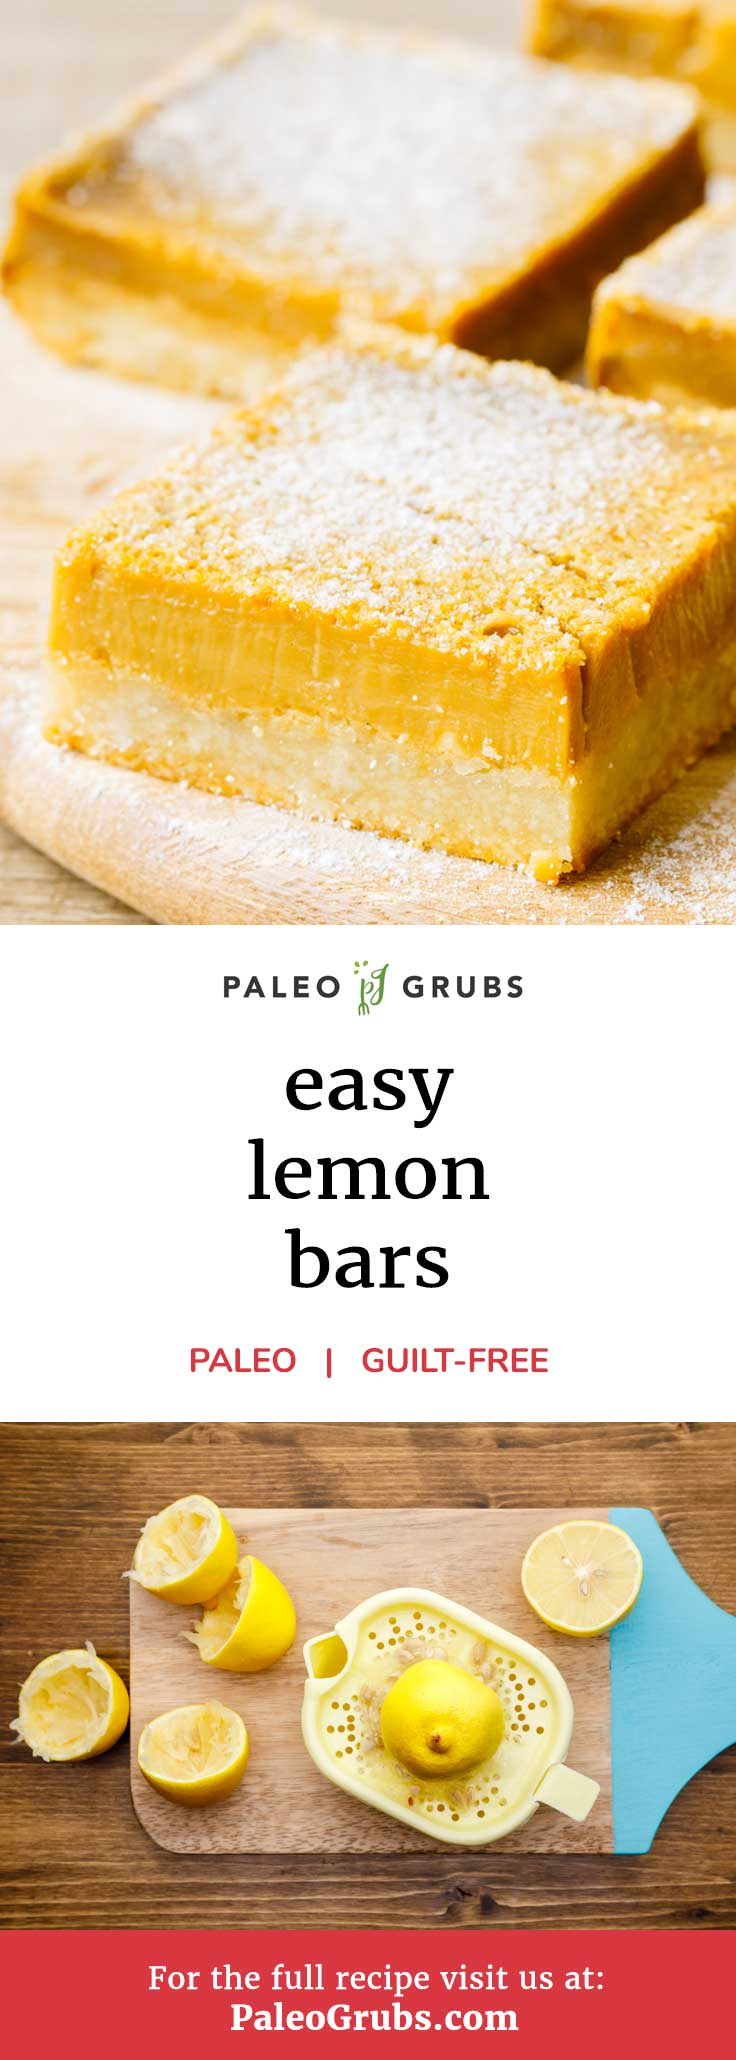 Do you need more lemon desserts in your life? I know the feeling. That's precisely why I wanted to share this awesome recipe for homemade paleo lemon bars. It uses all natural whole food ingredients to make a deliciously sweet and tart paleo-friendly dessert offering that you won't be able to get enough of.